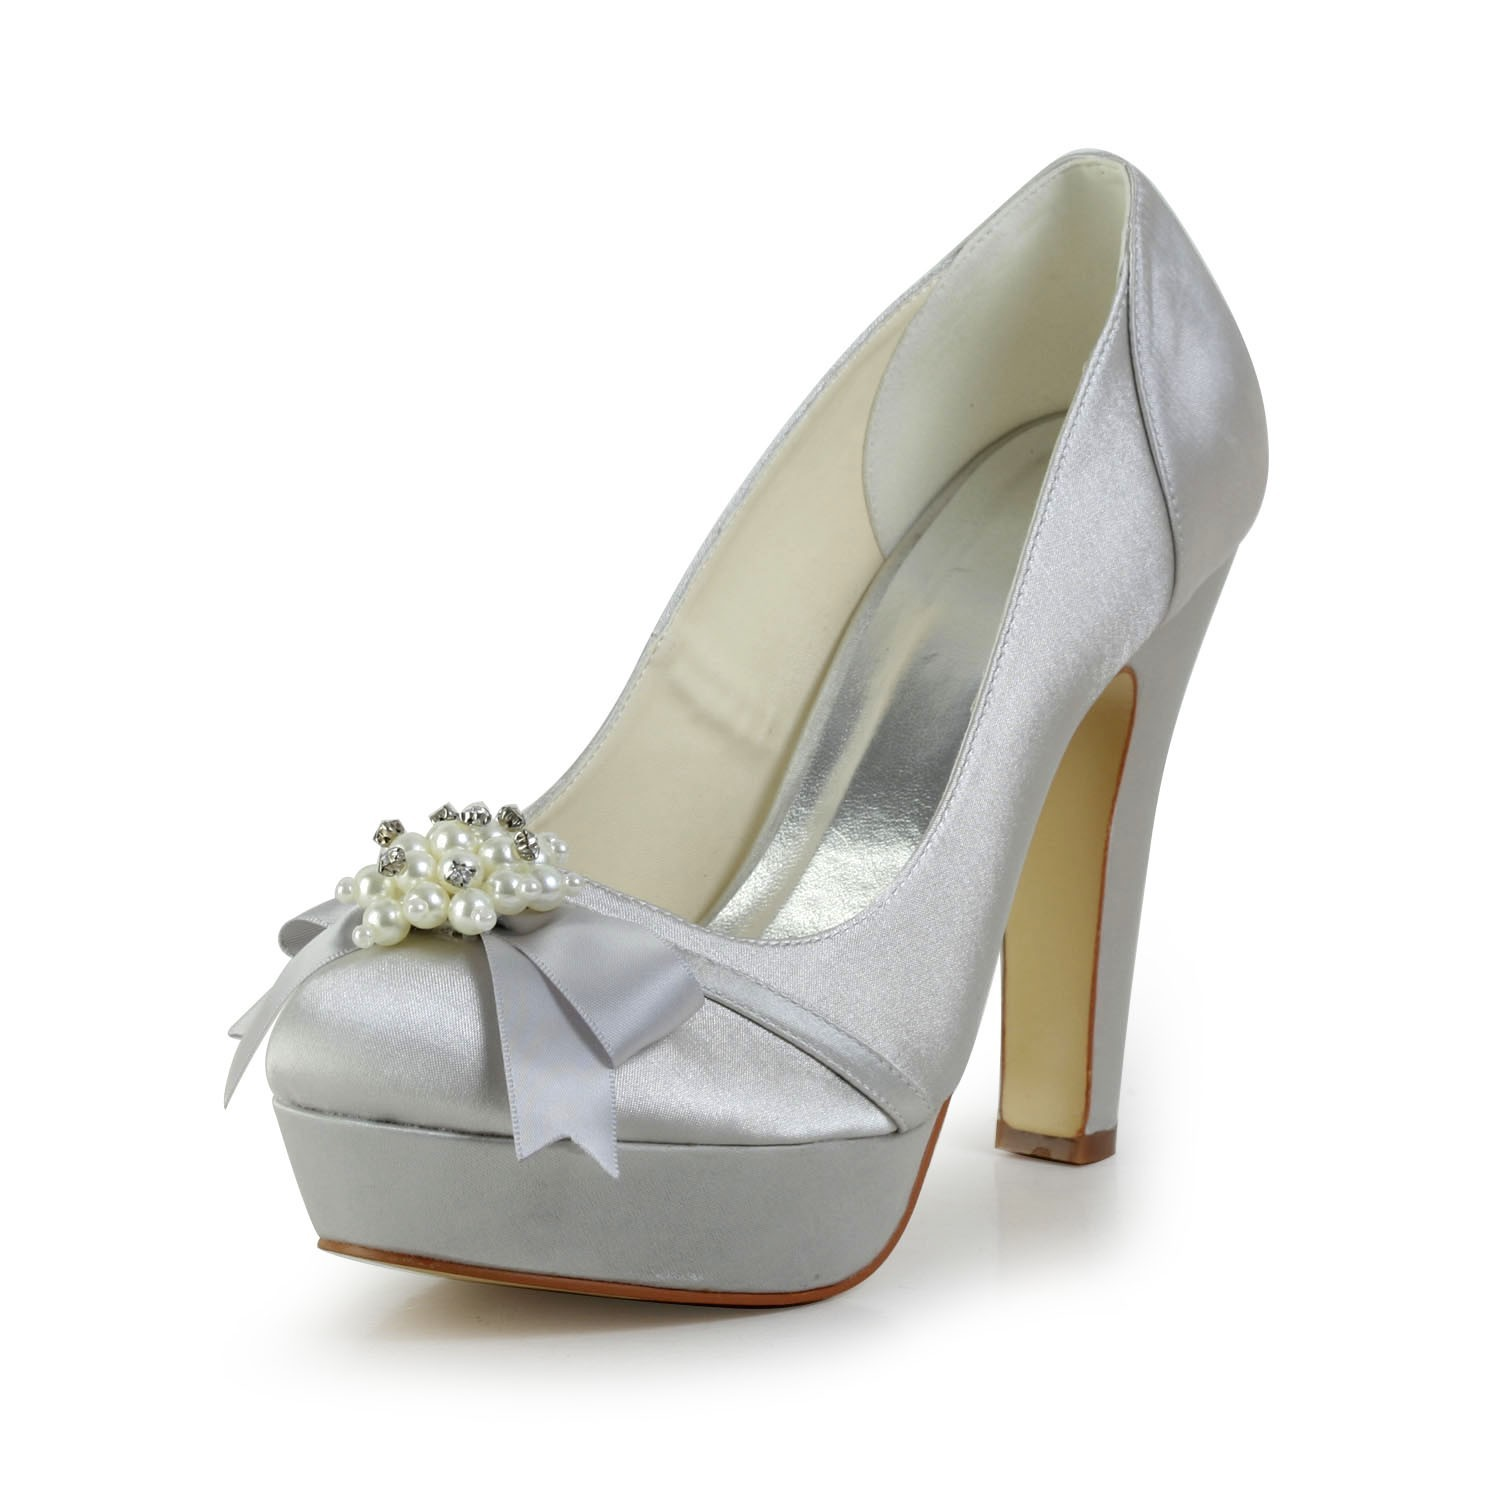 Silver Platform Shoes For Wedding 028 - Silver Platform Shoes For Wedding